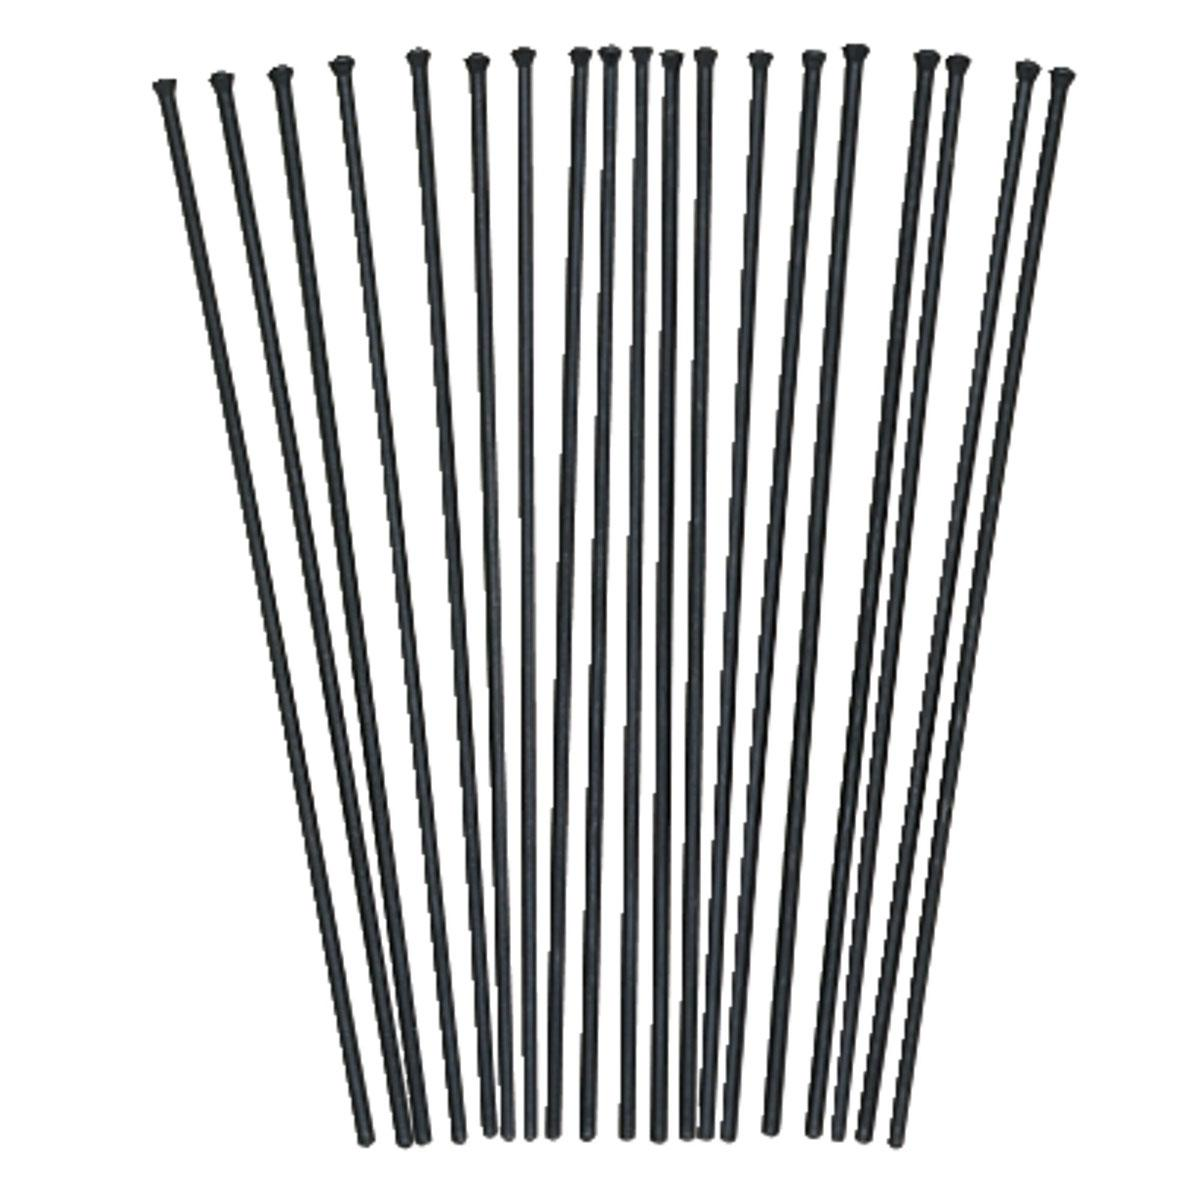 REP NEEDLES 19PC 3 180MM